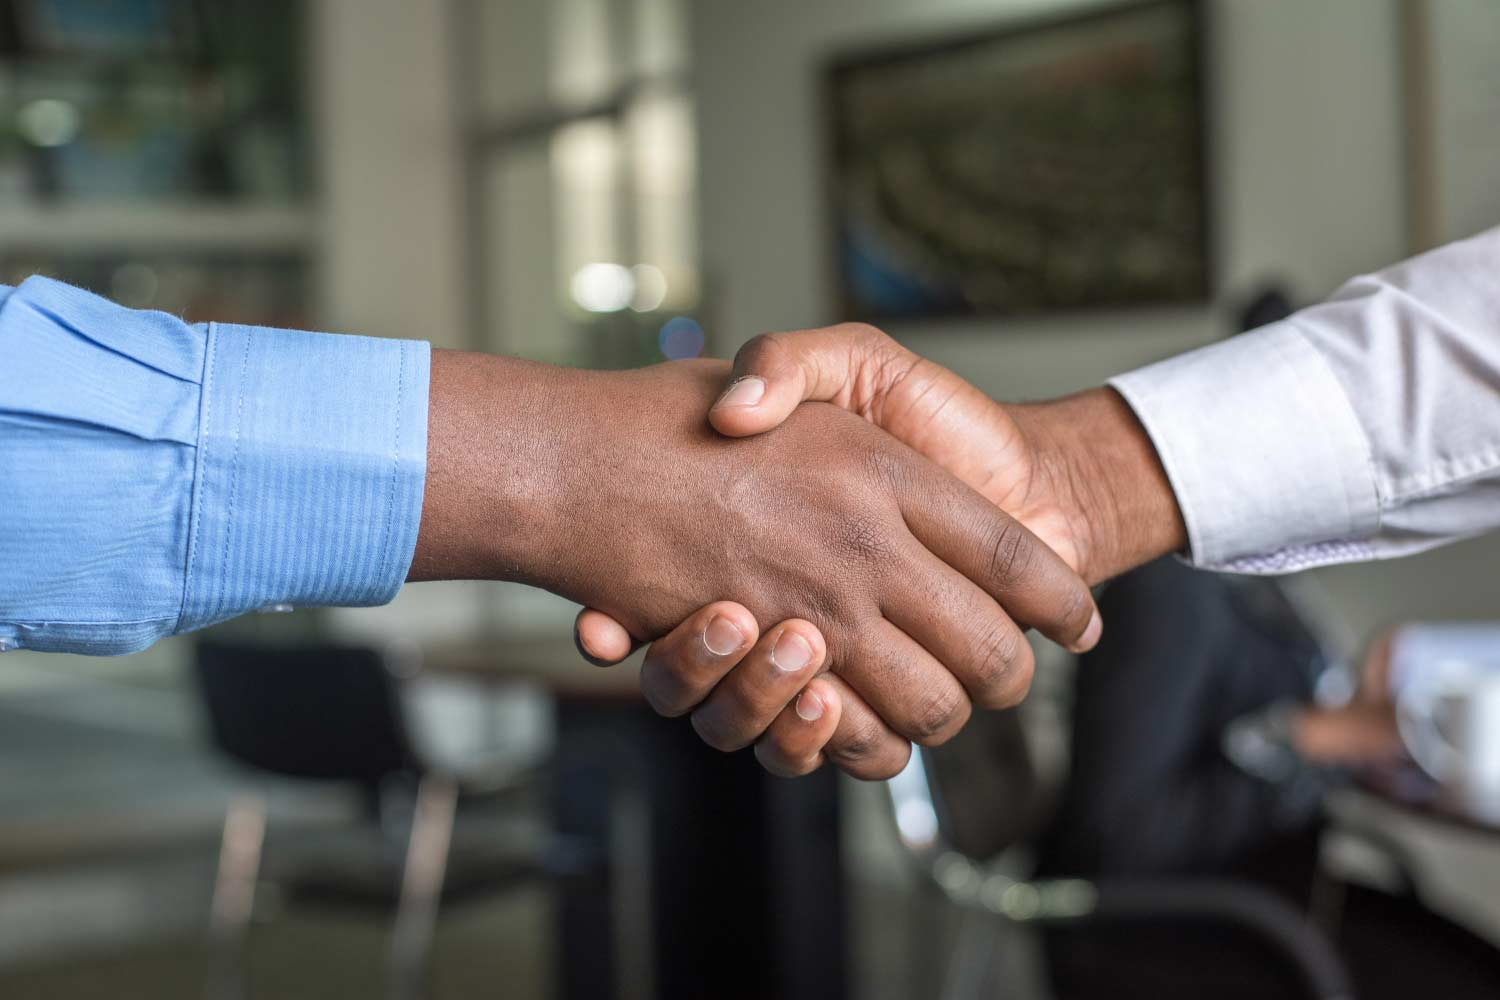 Close up (only their wrists & hands show) on two men wearing button-up shirts shaking hands with an office setup in the unfocused background